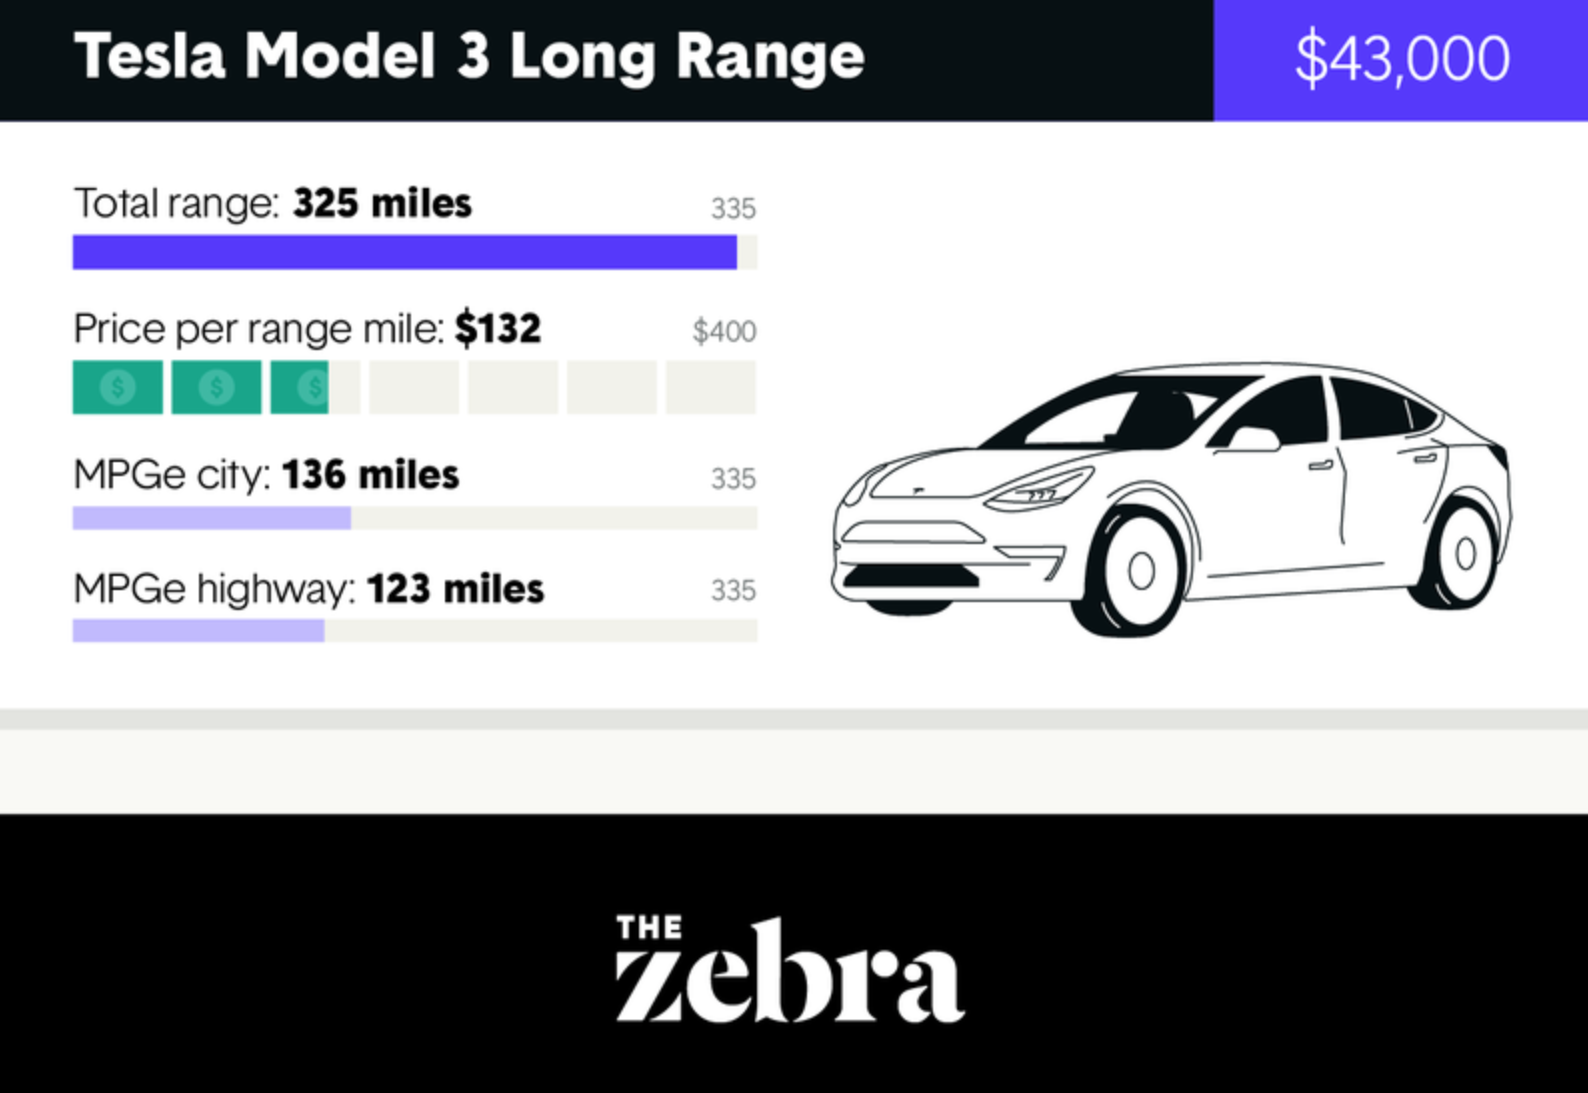 Comparing Electric Vehicles On Price Per Range Mile You Know Who Wins Infographic Cleantechnica